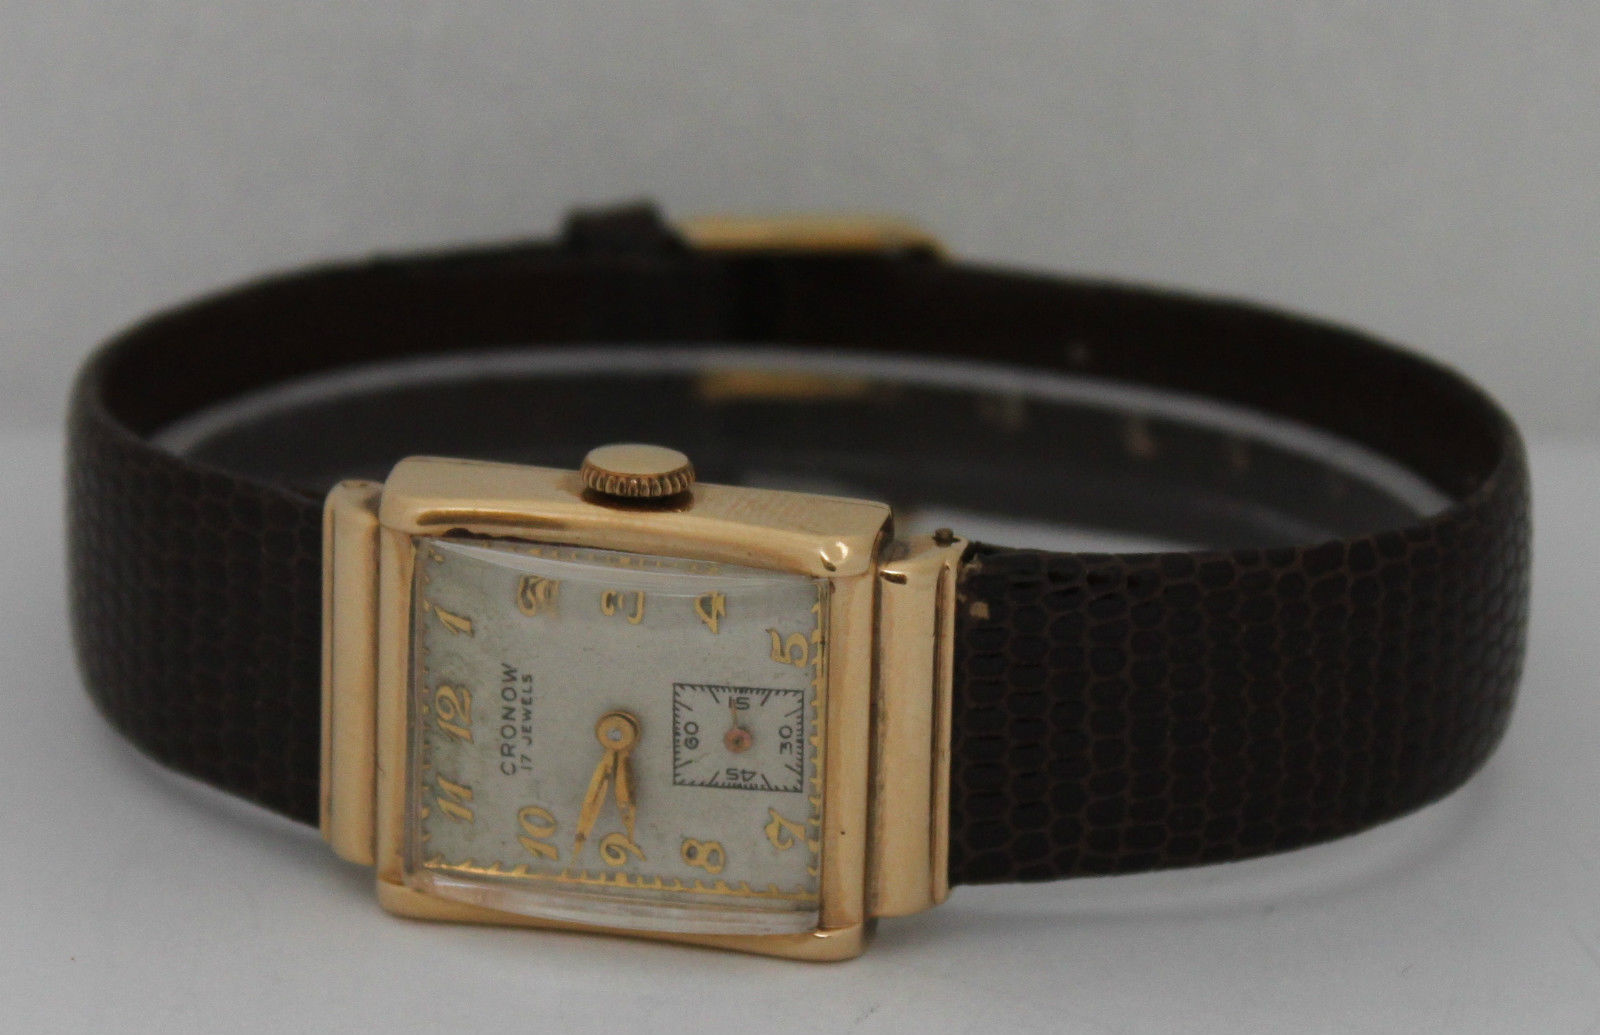 Vintage Cronow Hand-Winding 14K Yellow Gold Silver Dial Circa 1940s Watch